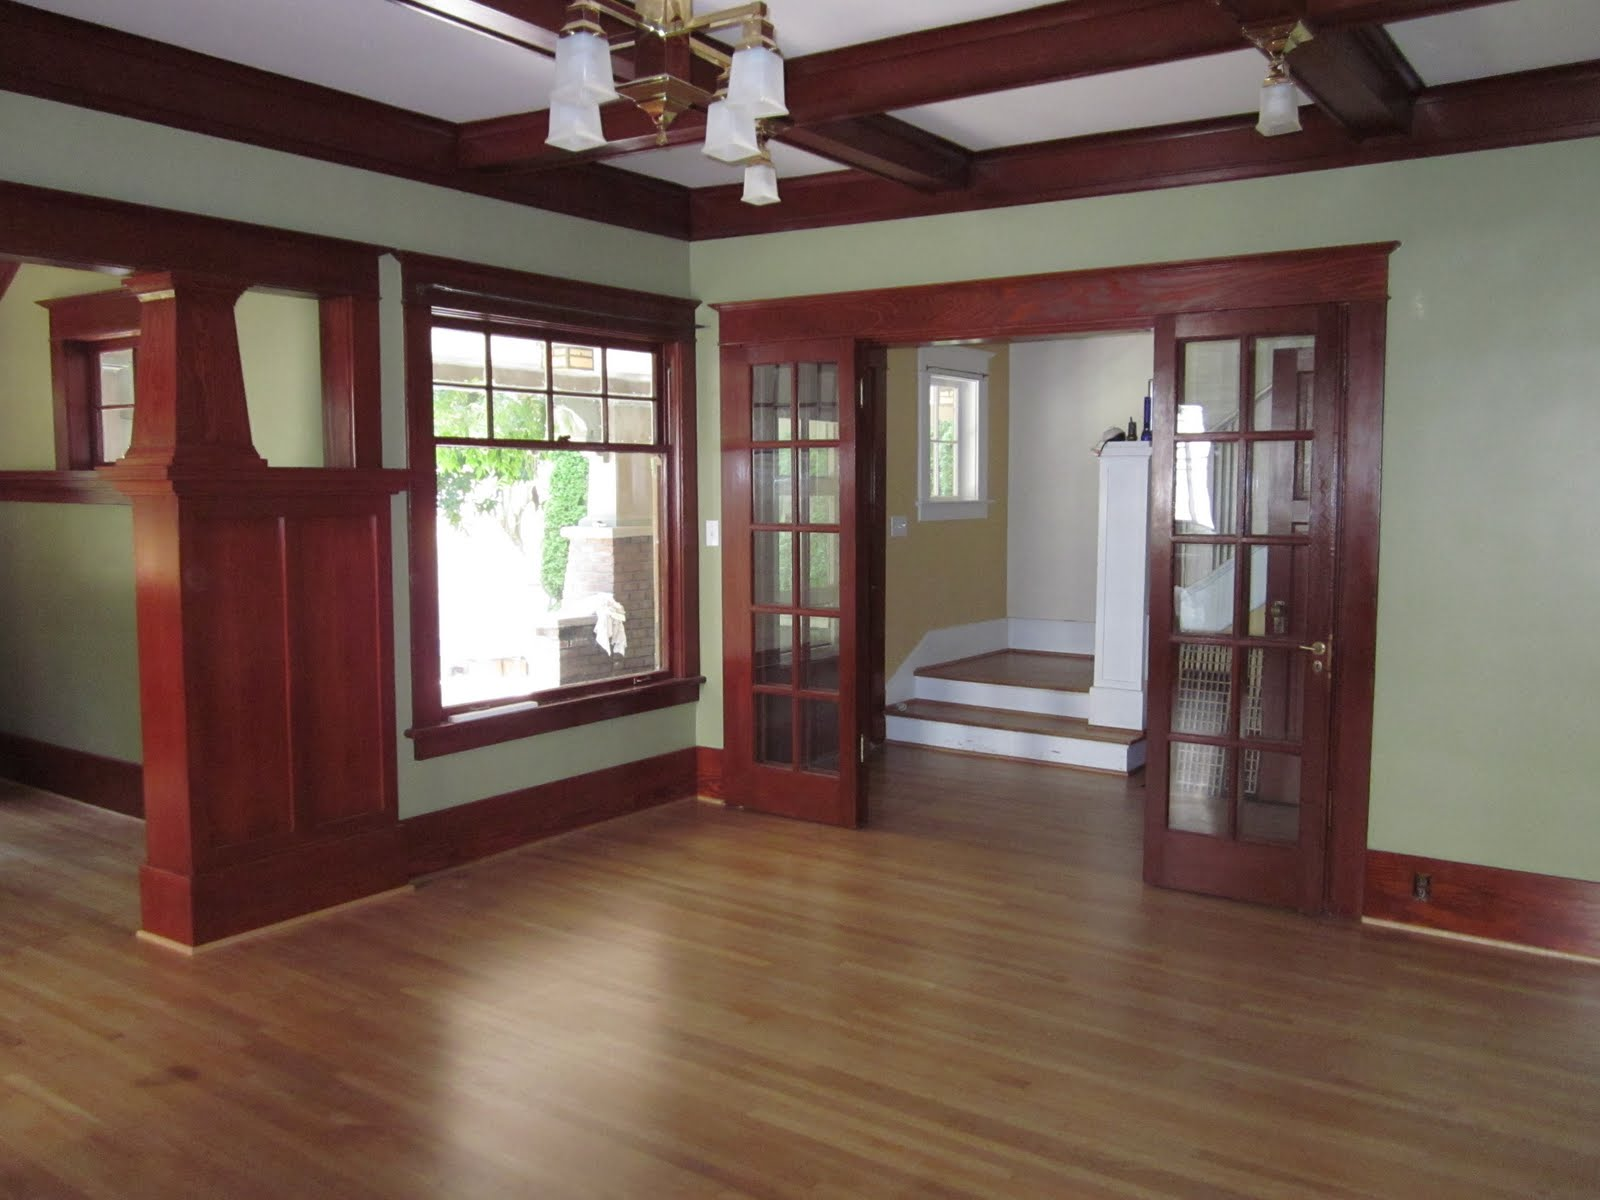 Laurelhurst craftsman bungalow living room photos for Interior colors for craftsman style homes